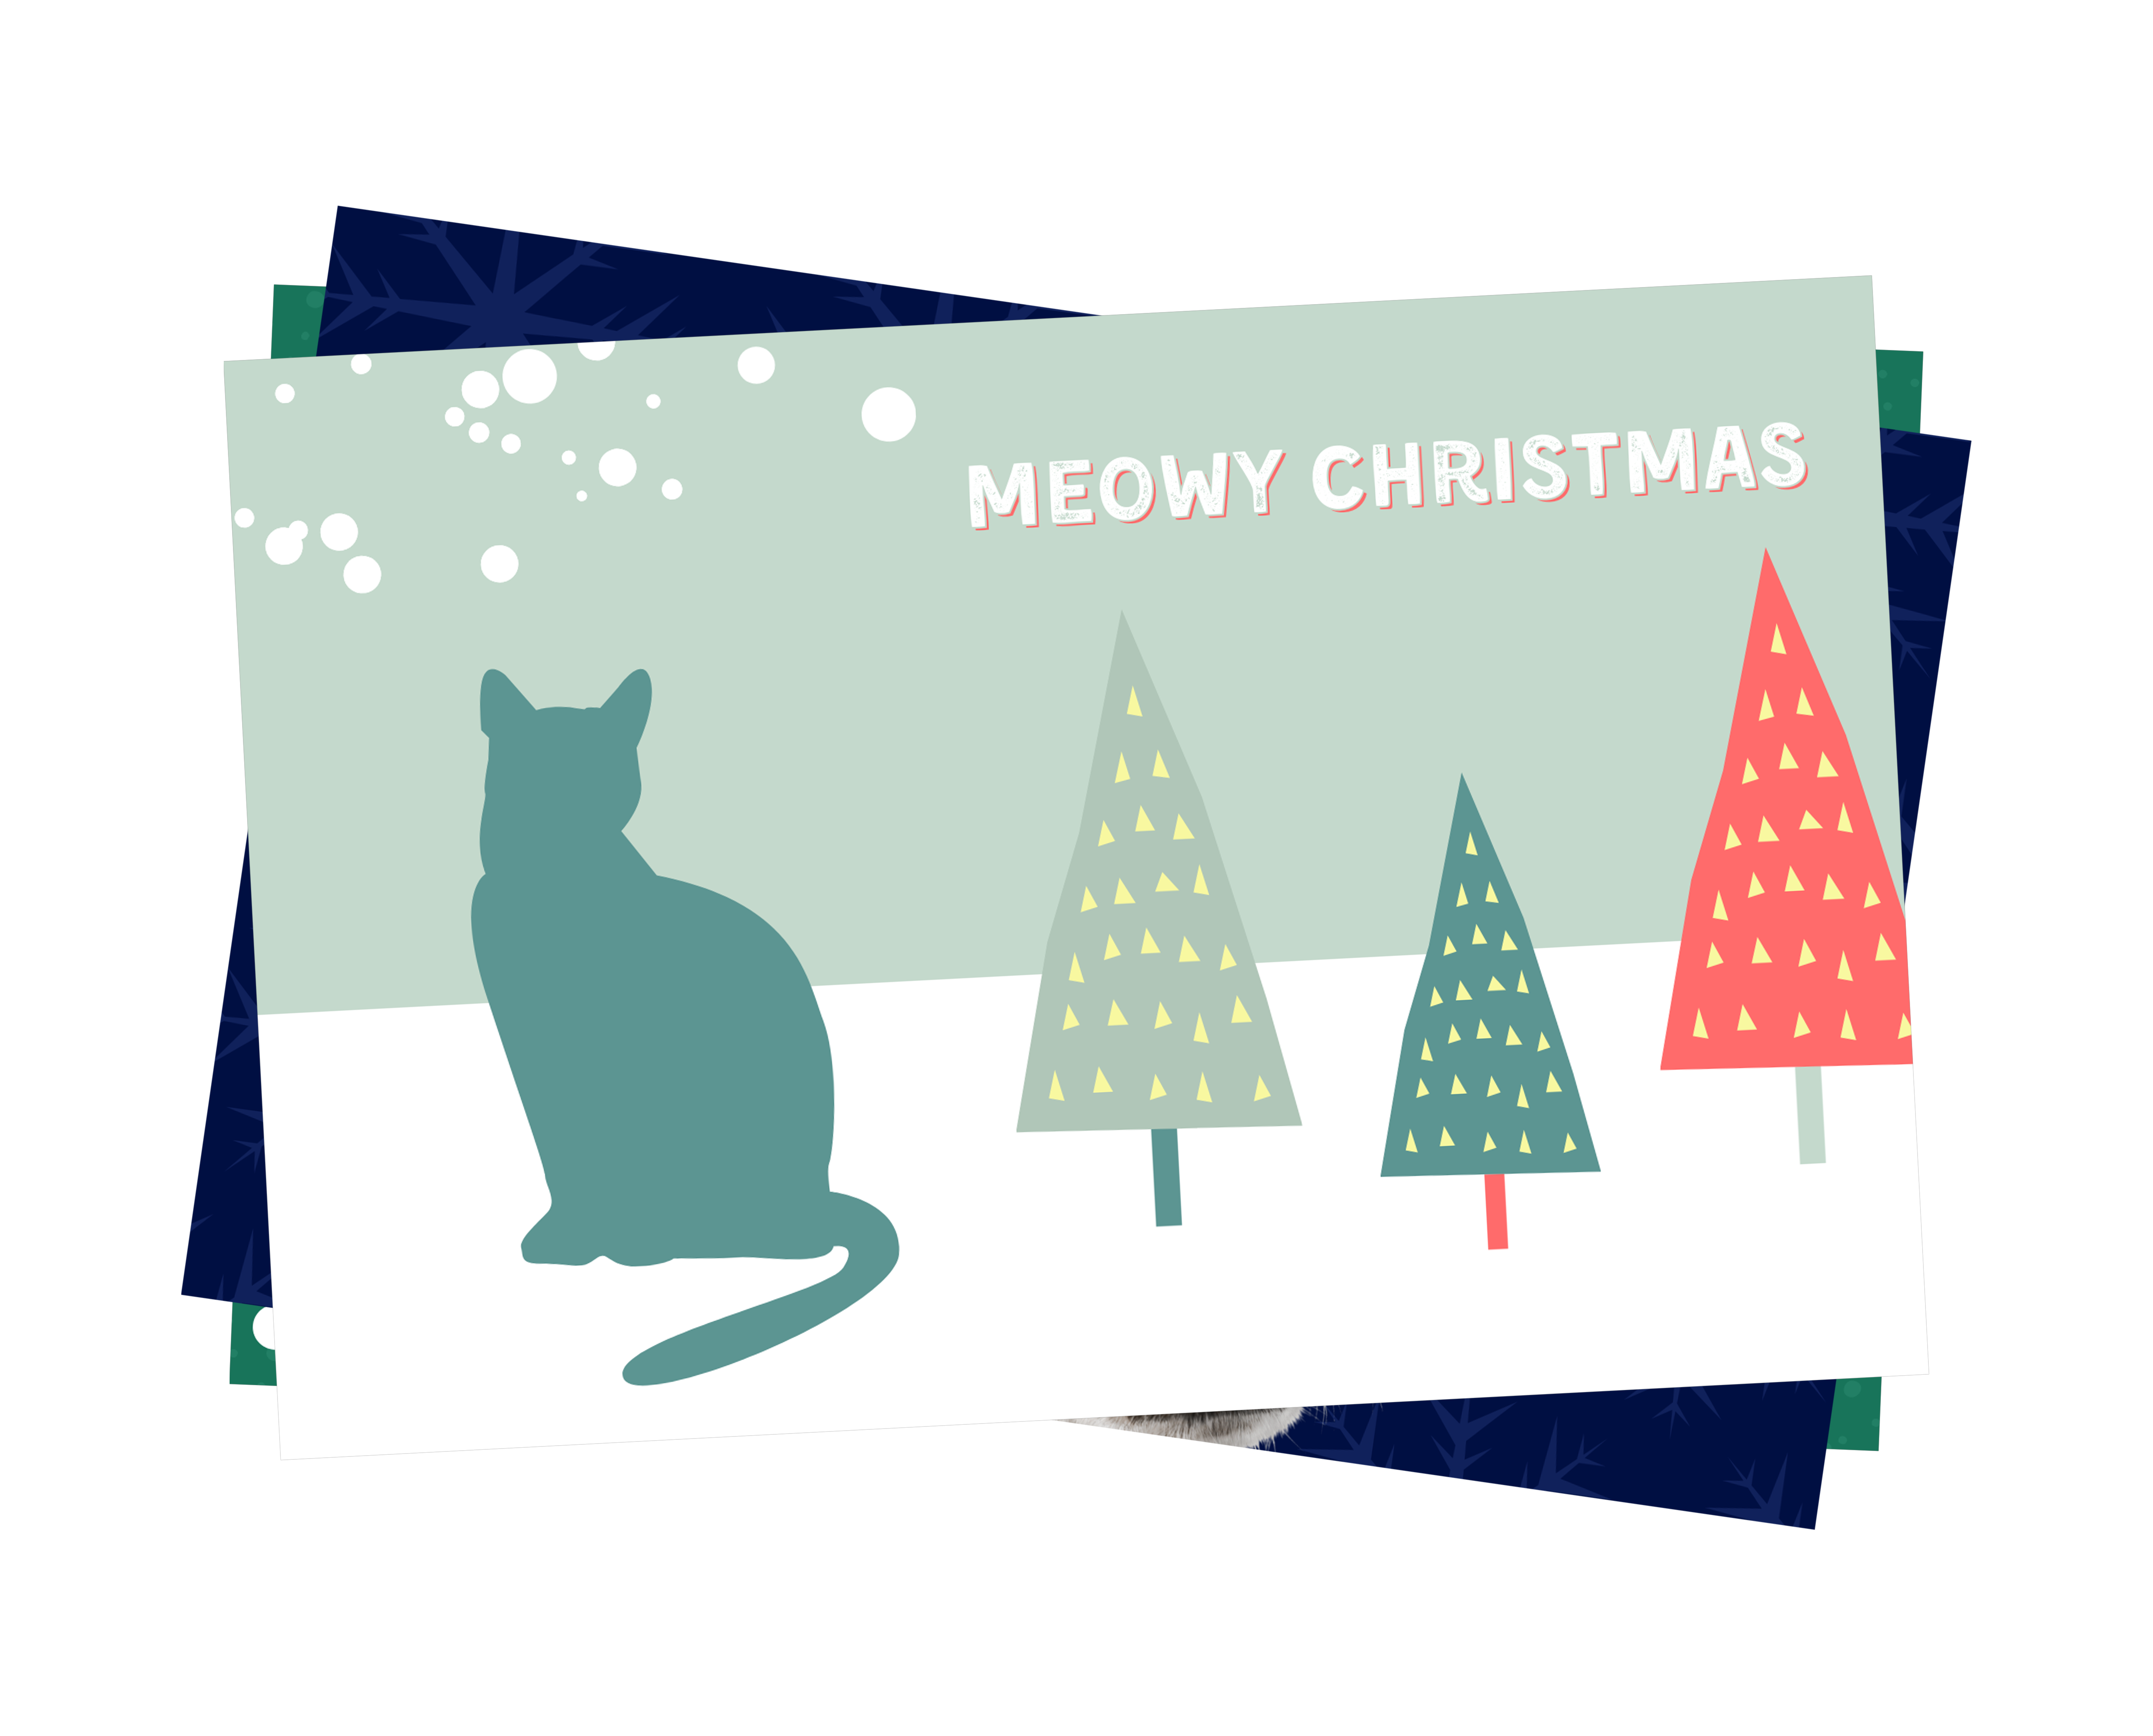 Meowy Christmas with cat illustration